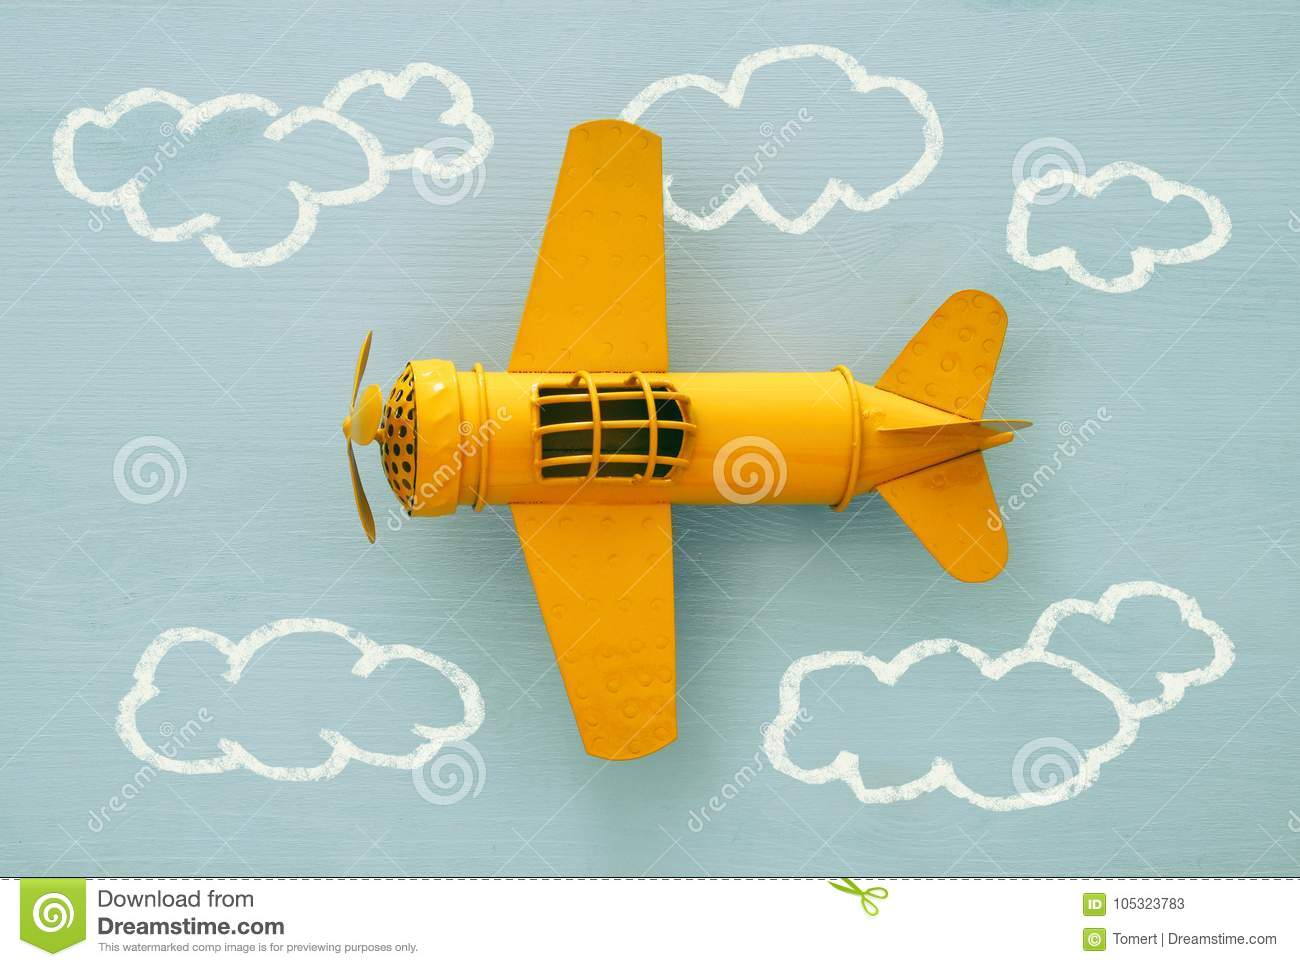 Concept of imagination, creativity, dreaming and childhood. Retro toy plane with info graphics sketch on the blue background